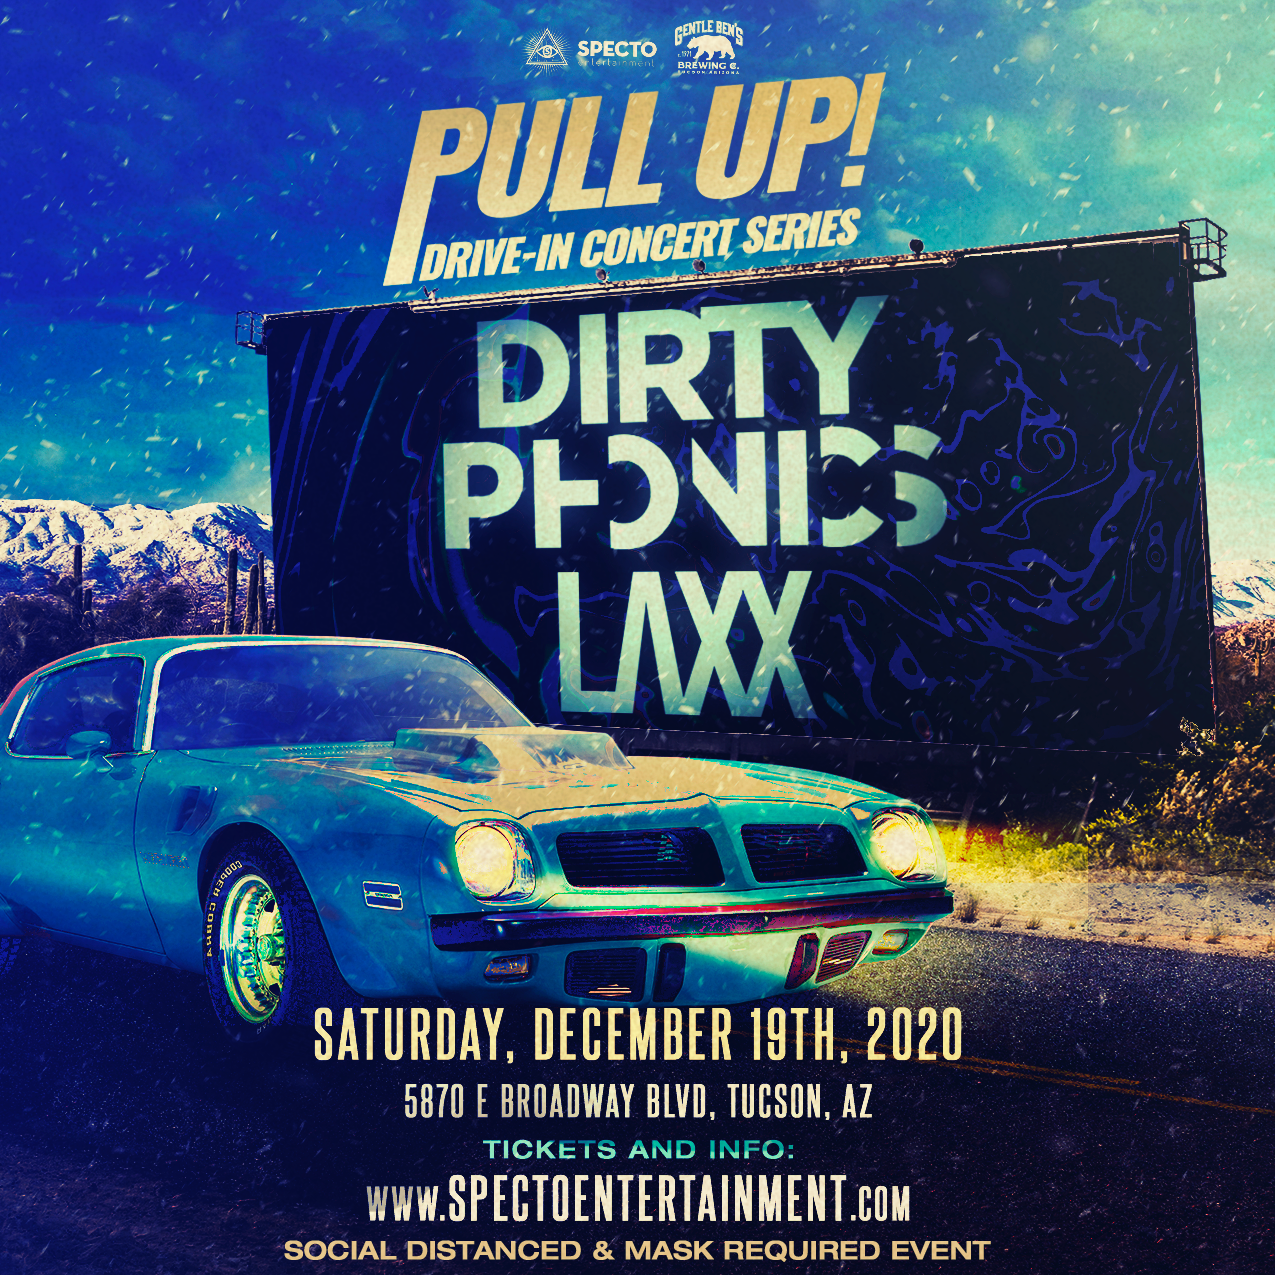 dirtyphonics laxx specto drive in rave